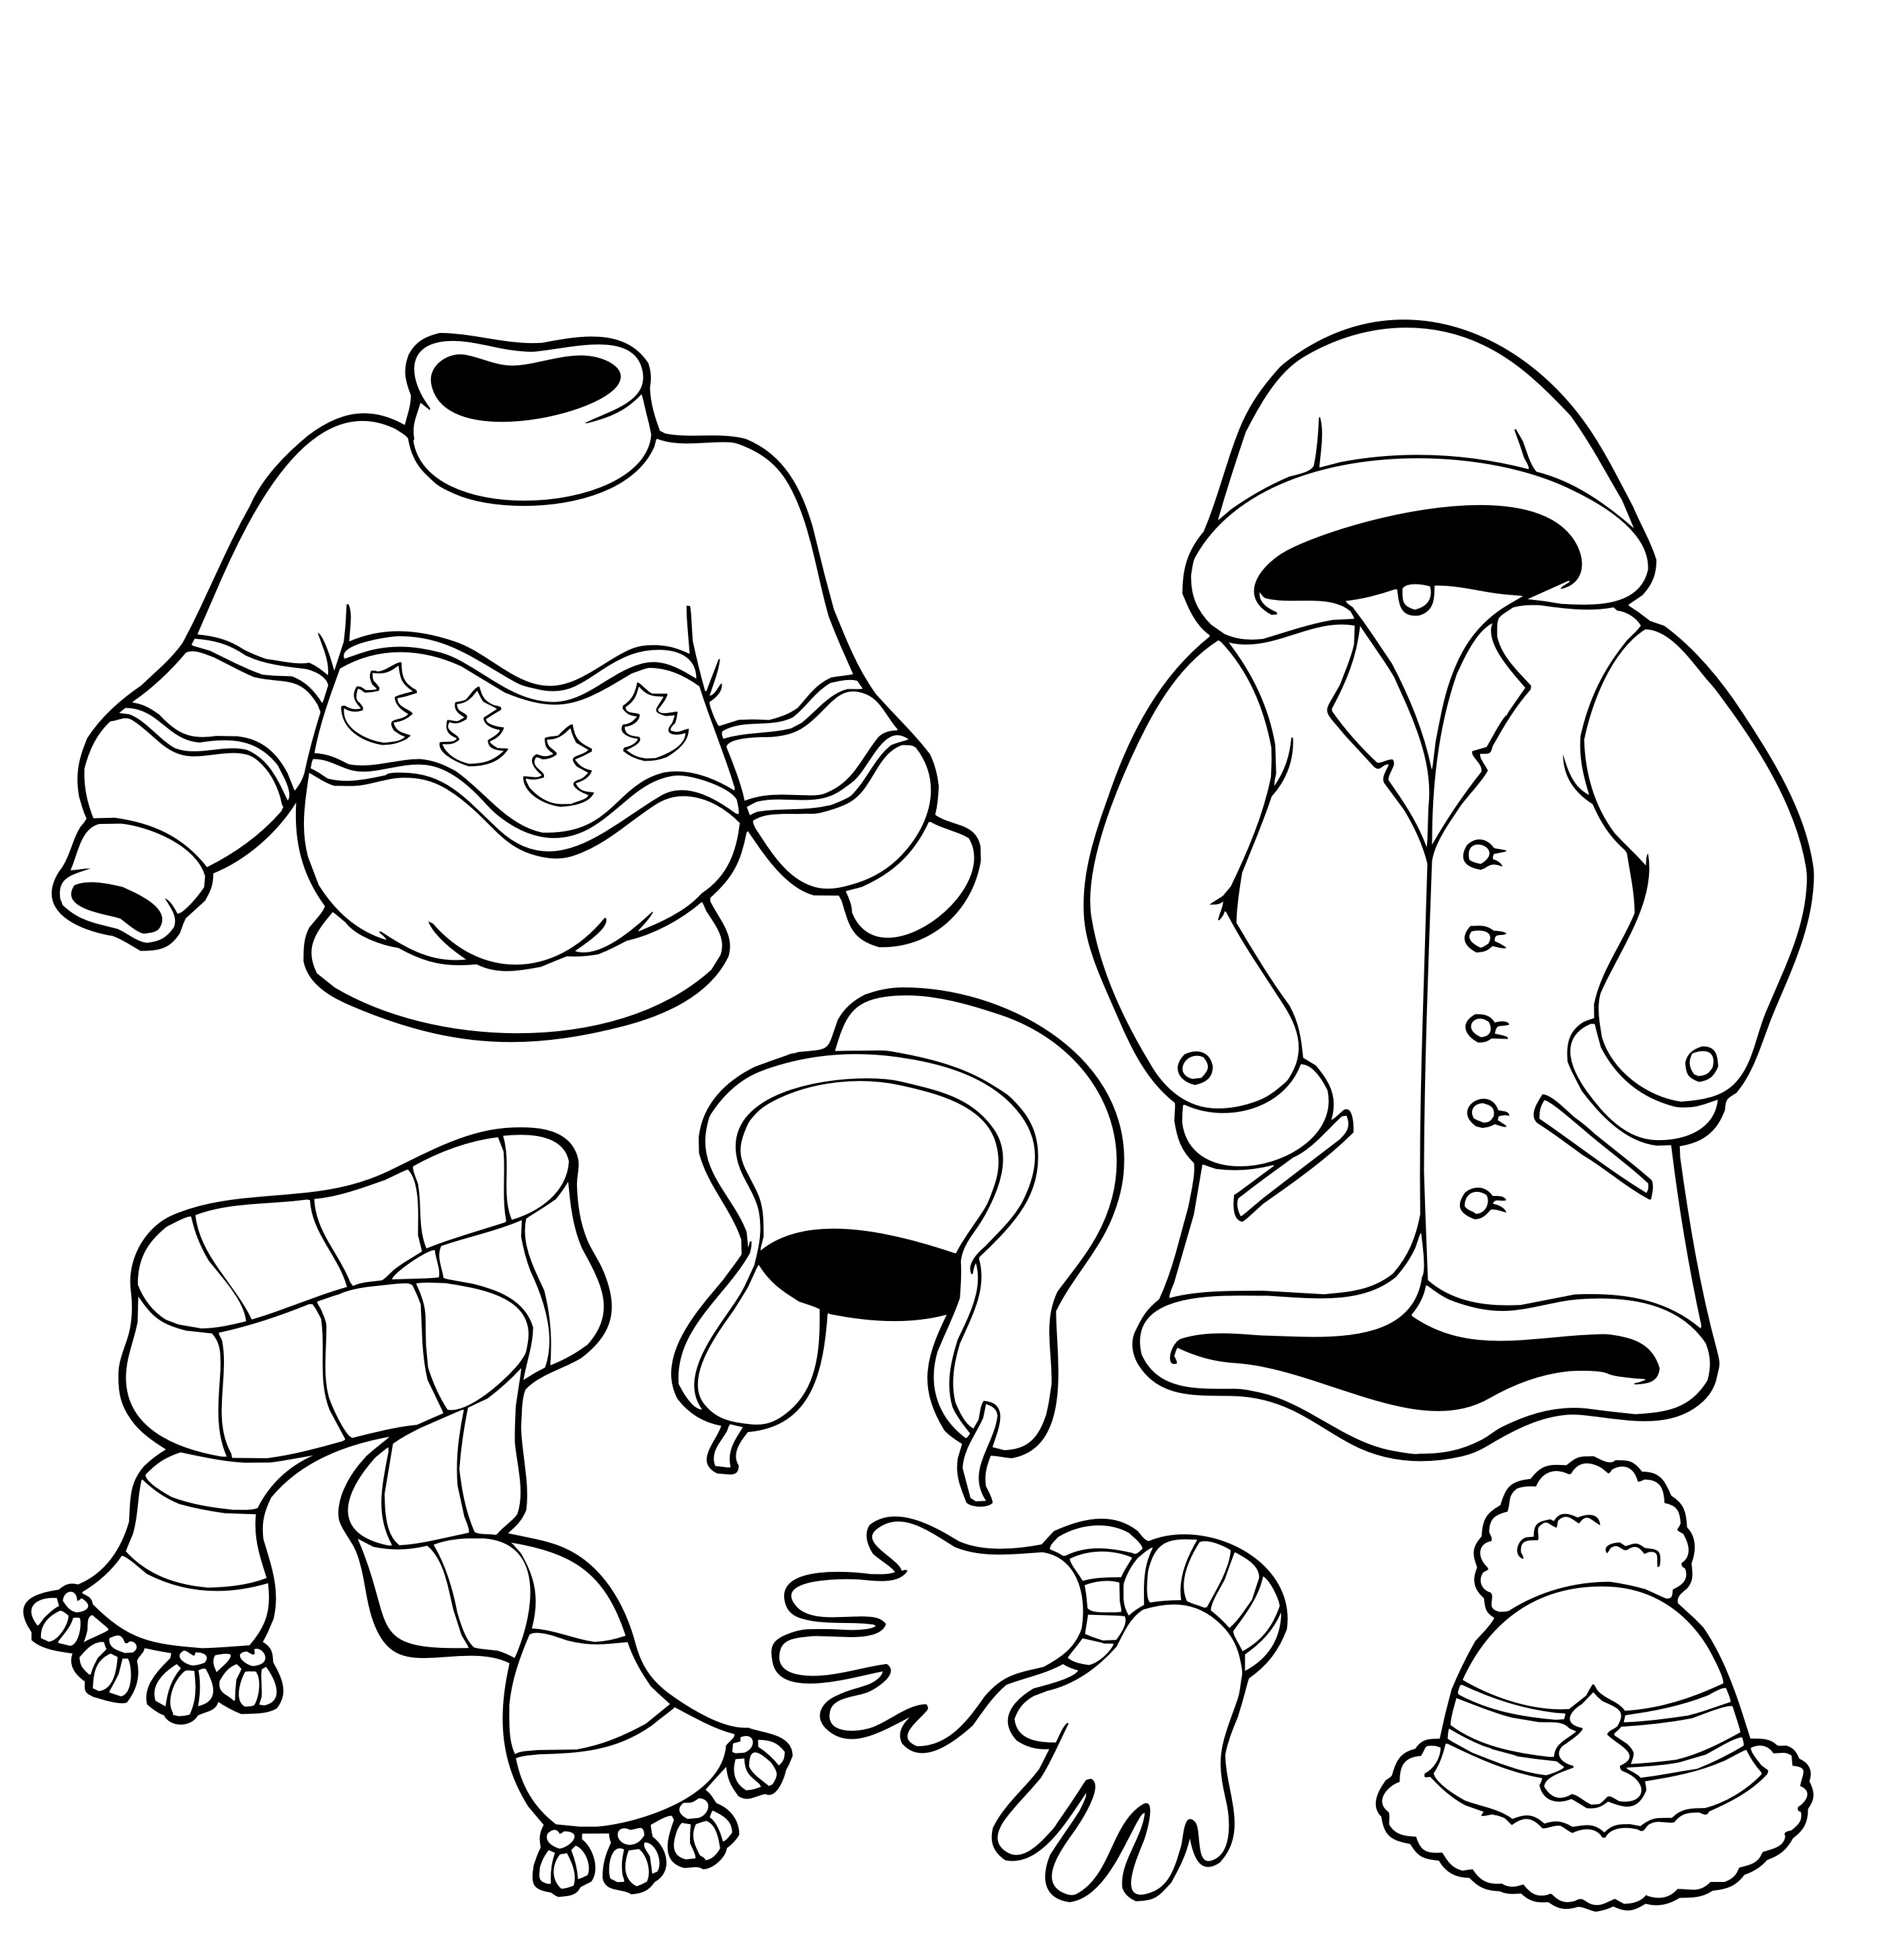 889 Winter Clothes free clipart.